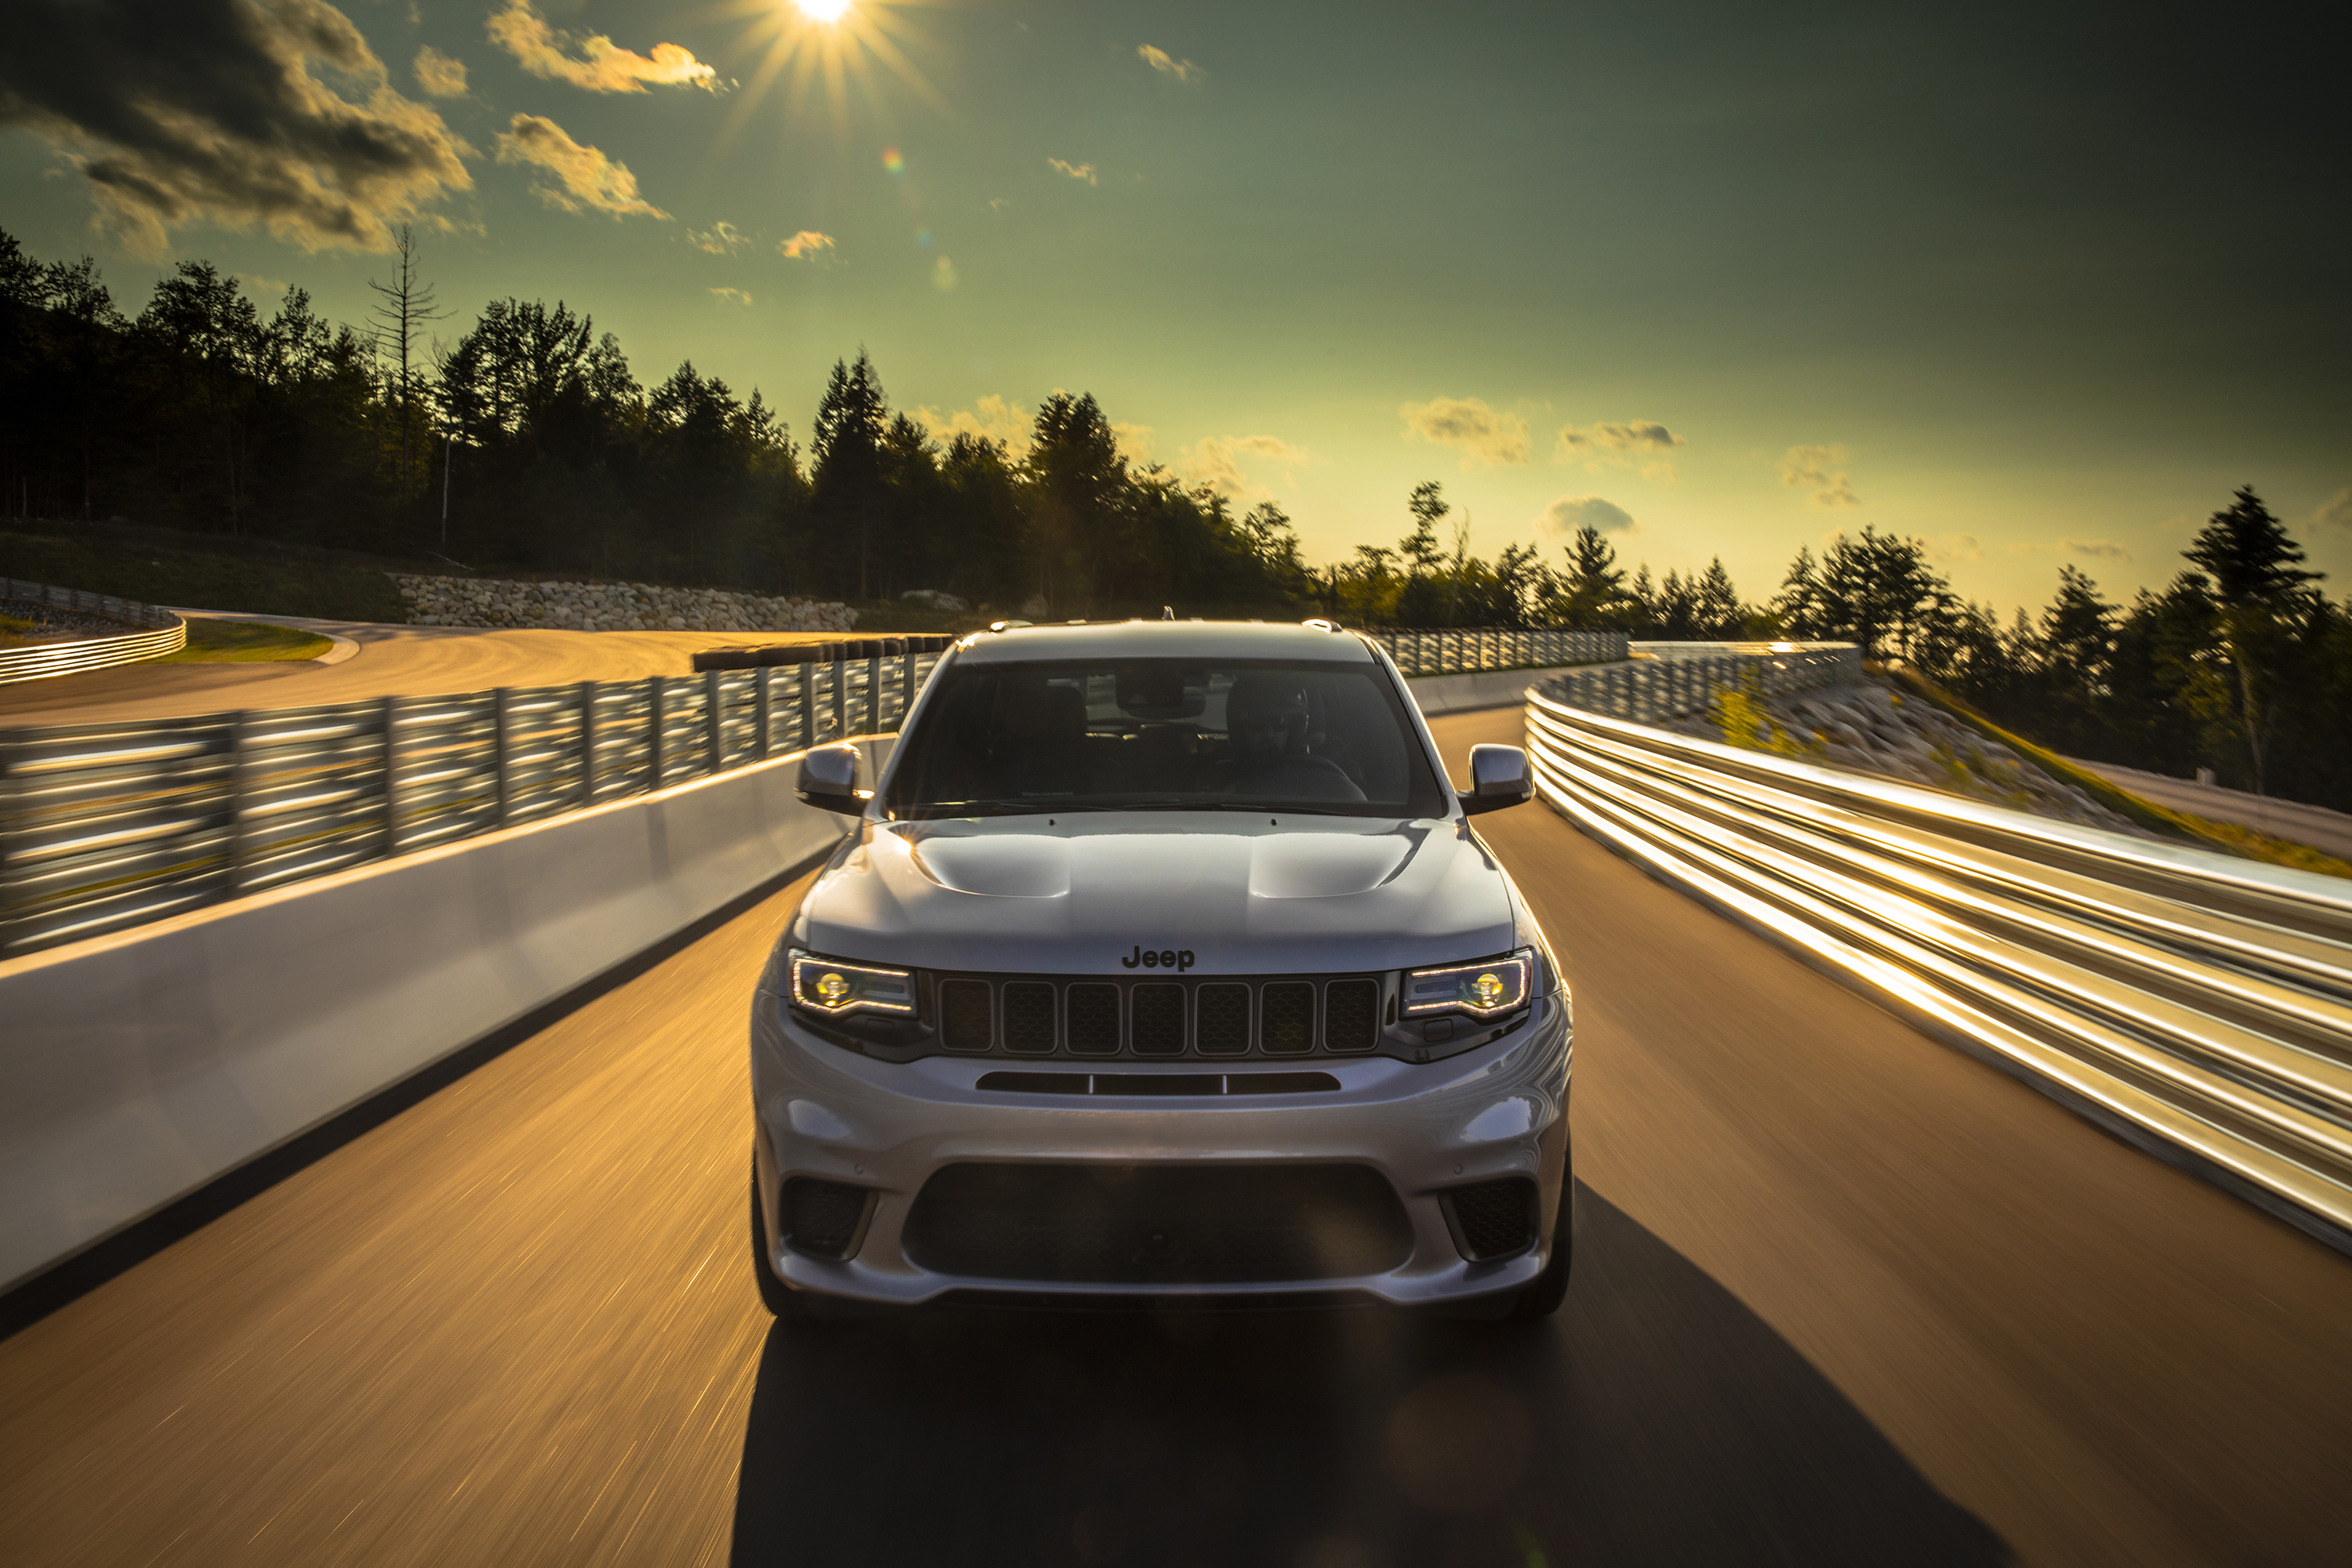 The Trackhawk on Club Motorsports' challenging 2.5-mile-long race circuit in west central New Hampshire.